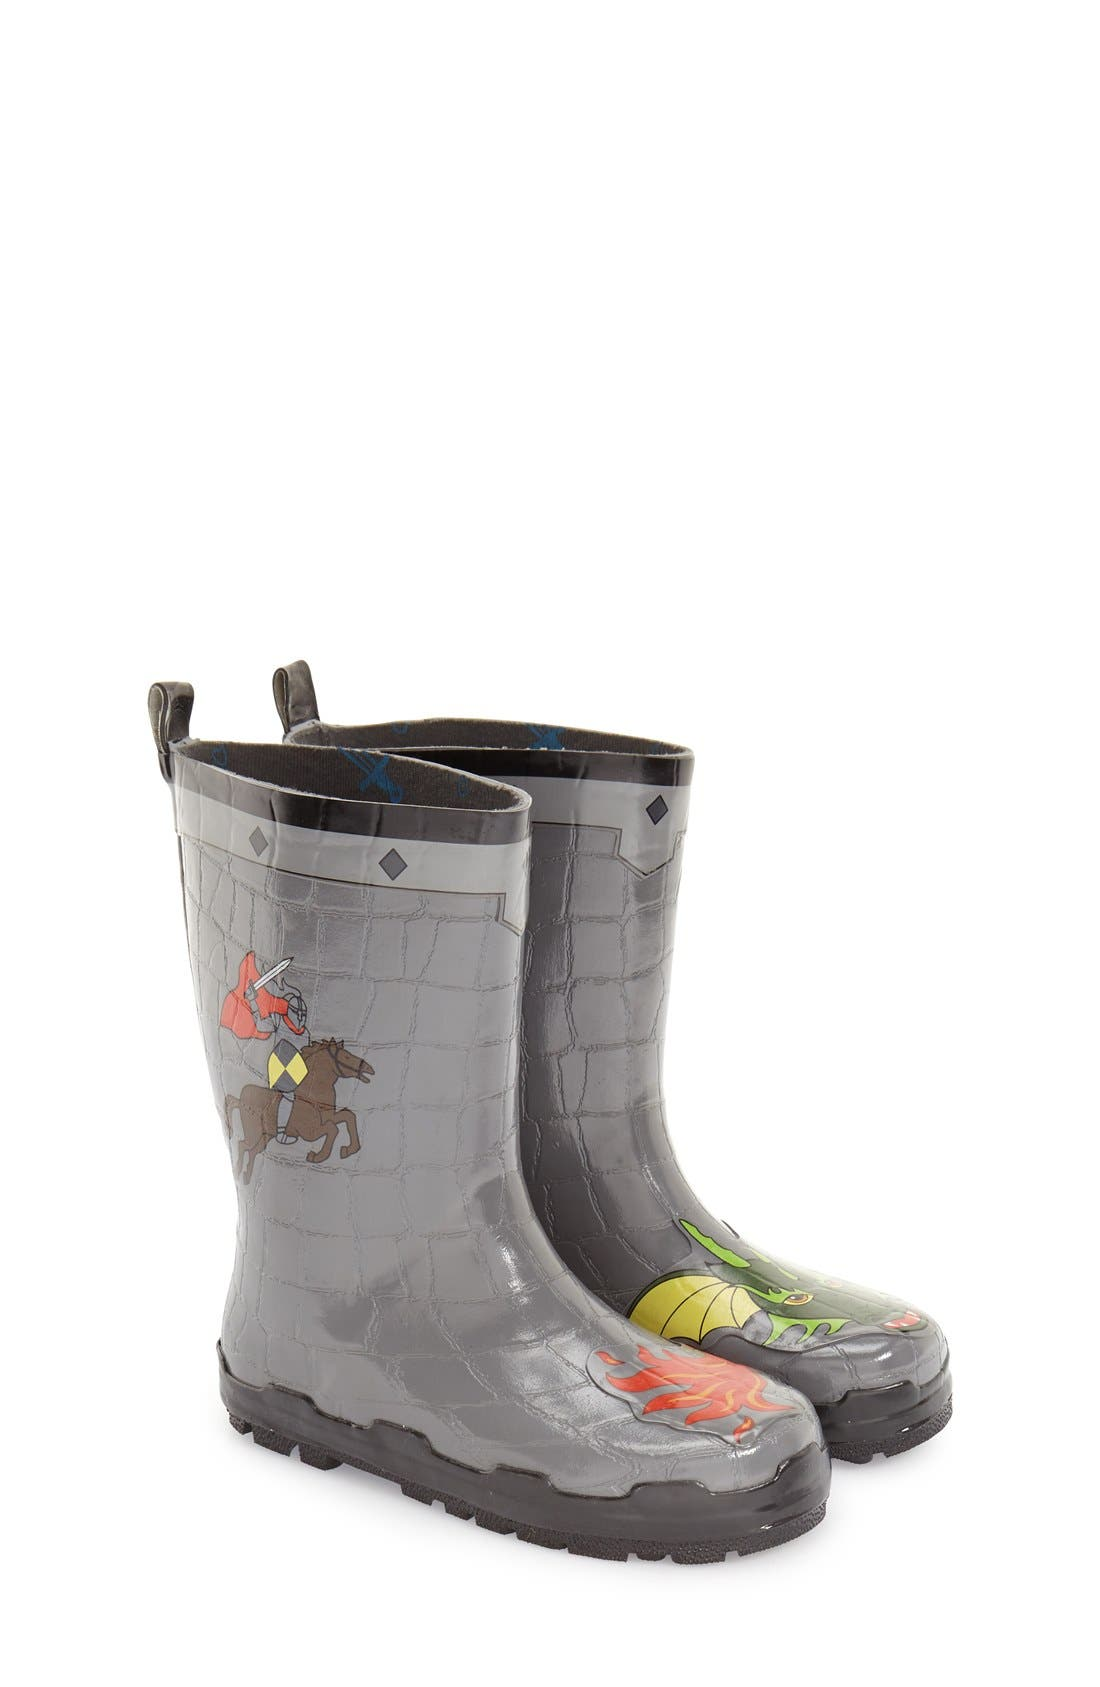 KIDORABLE 'Dragon Knight' Waterproof Rain Boot